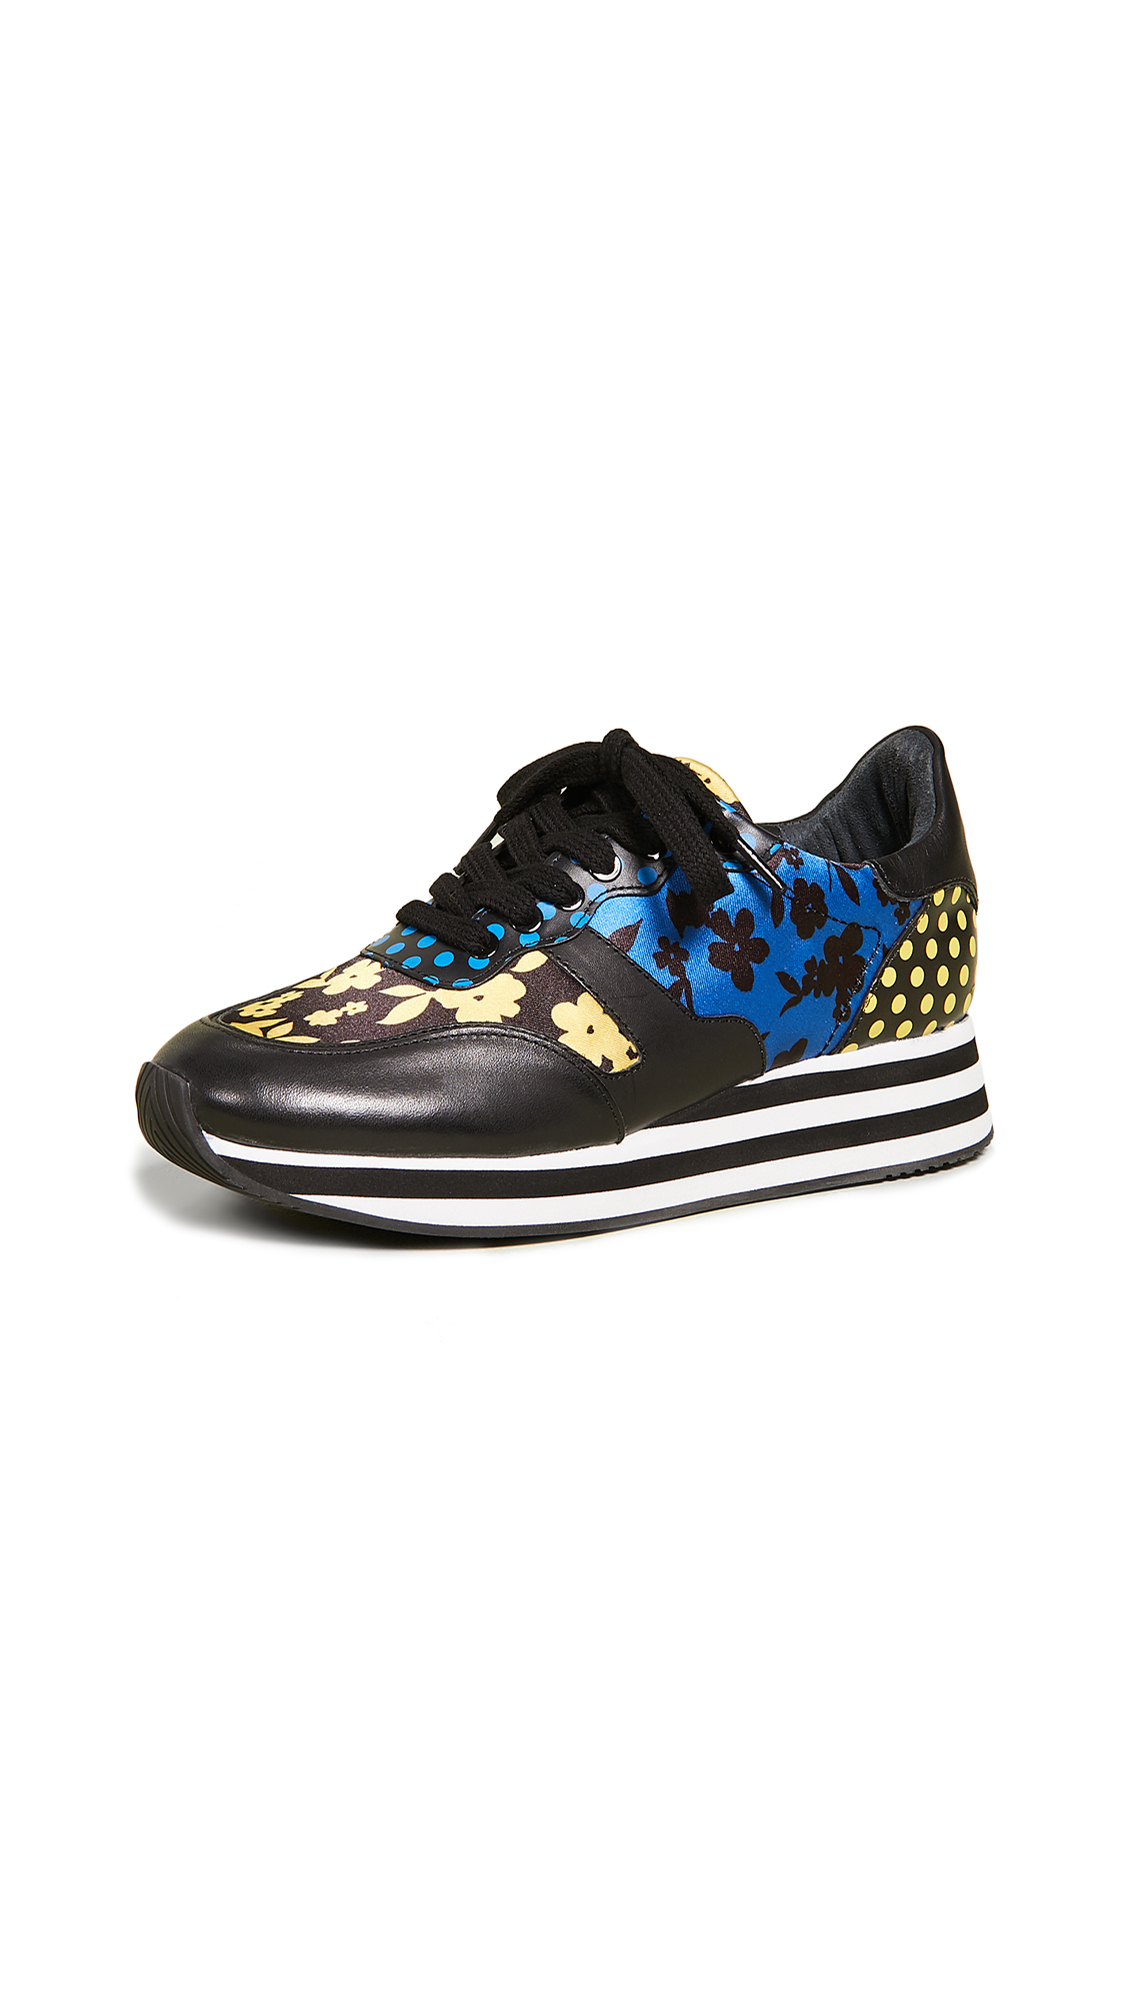 alice + olivia Magman Sneakers - Multi